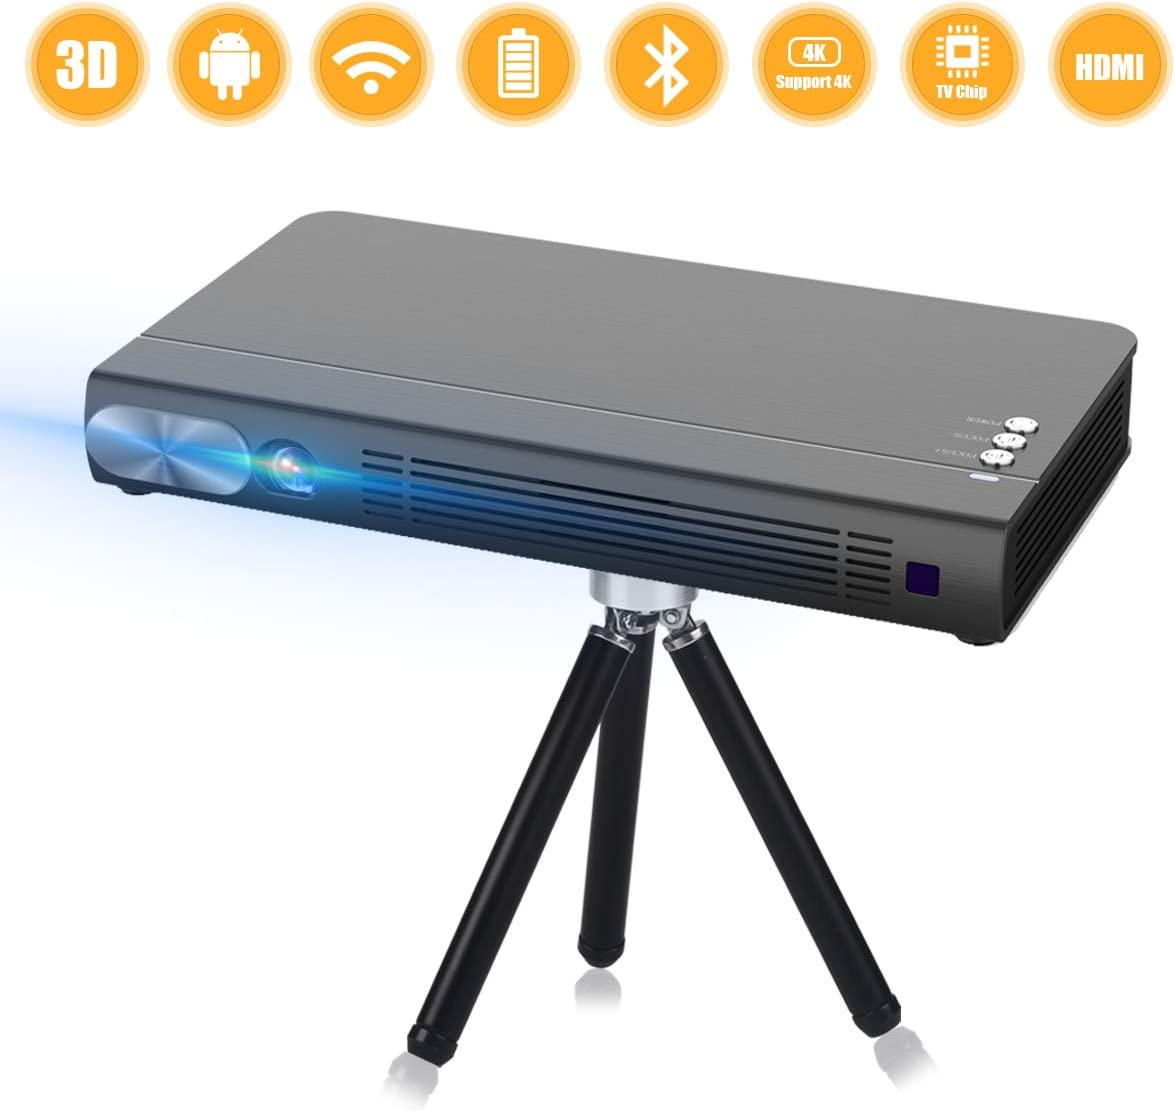 Mini Proyector T5 2019 Nueva Android 6.0 Portátil Videoproyector ...